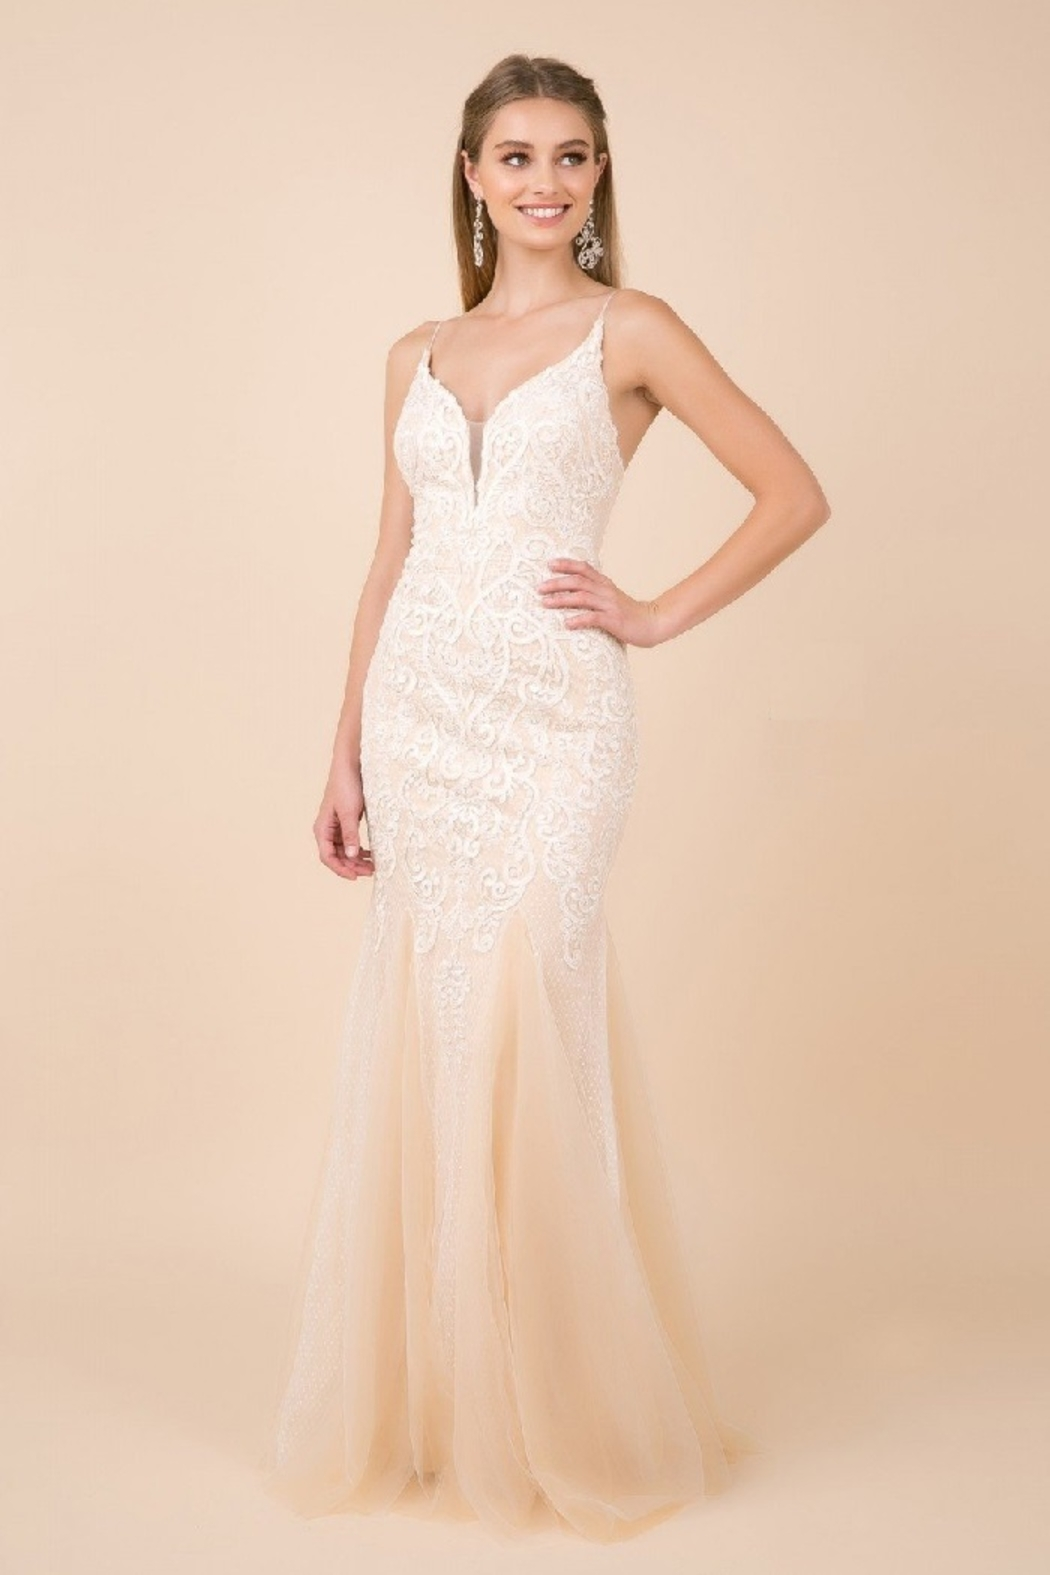 NOX A N A B E L White & Nude Lace Mermaid Bridal Gown - Front Full Image